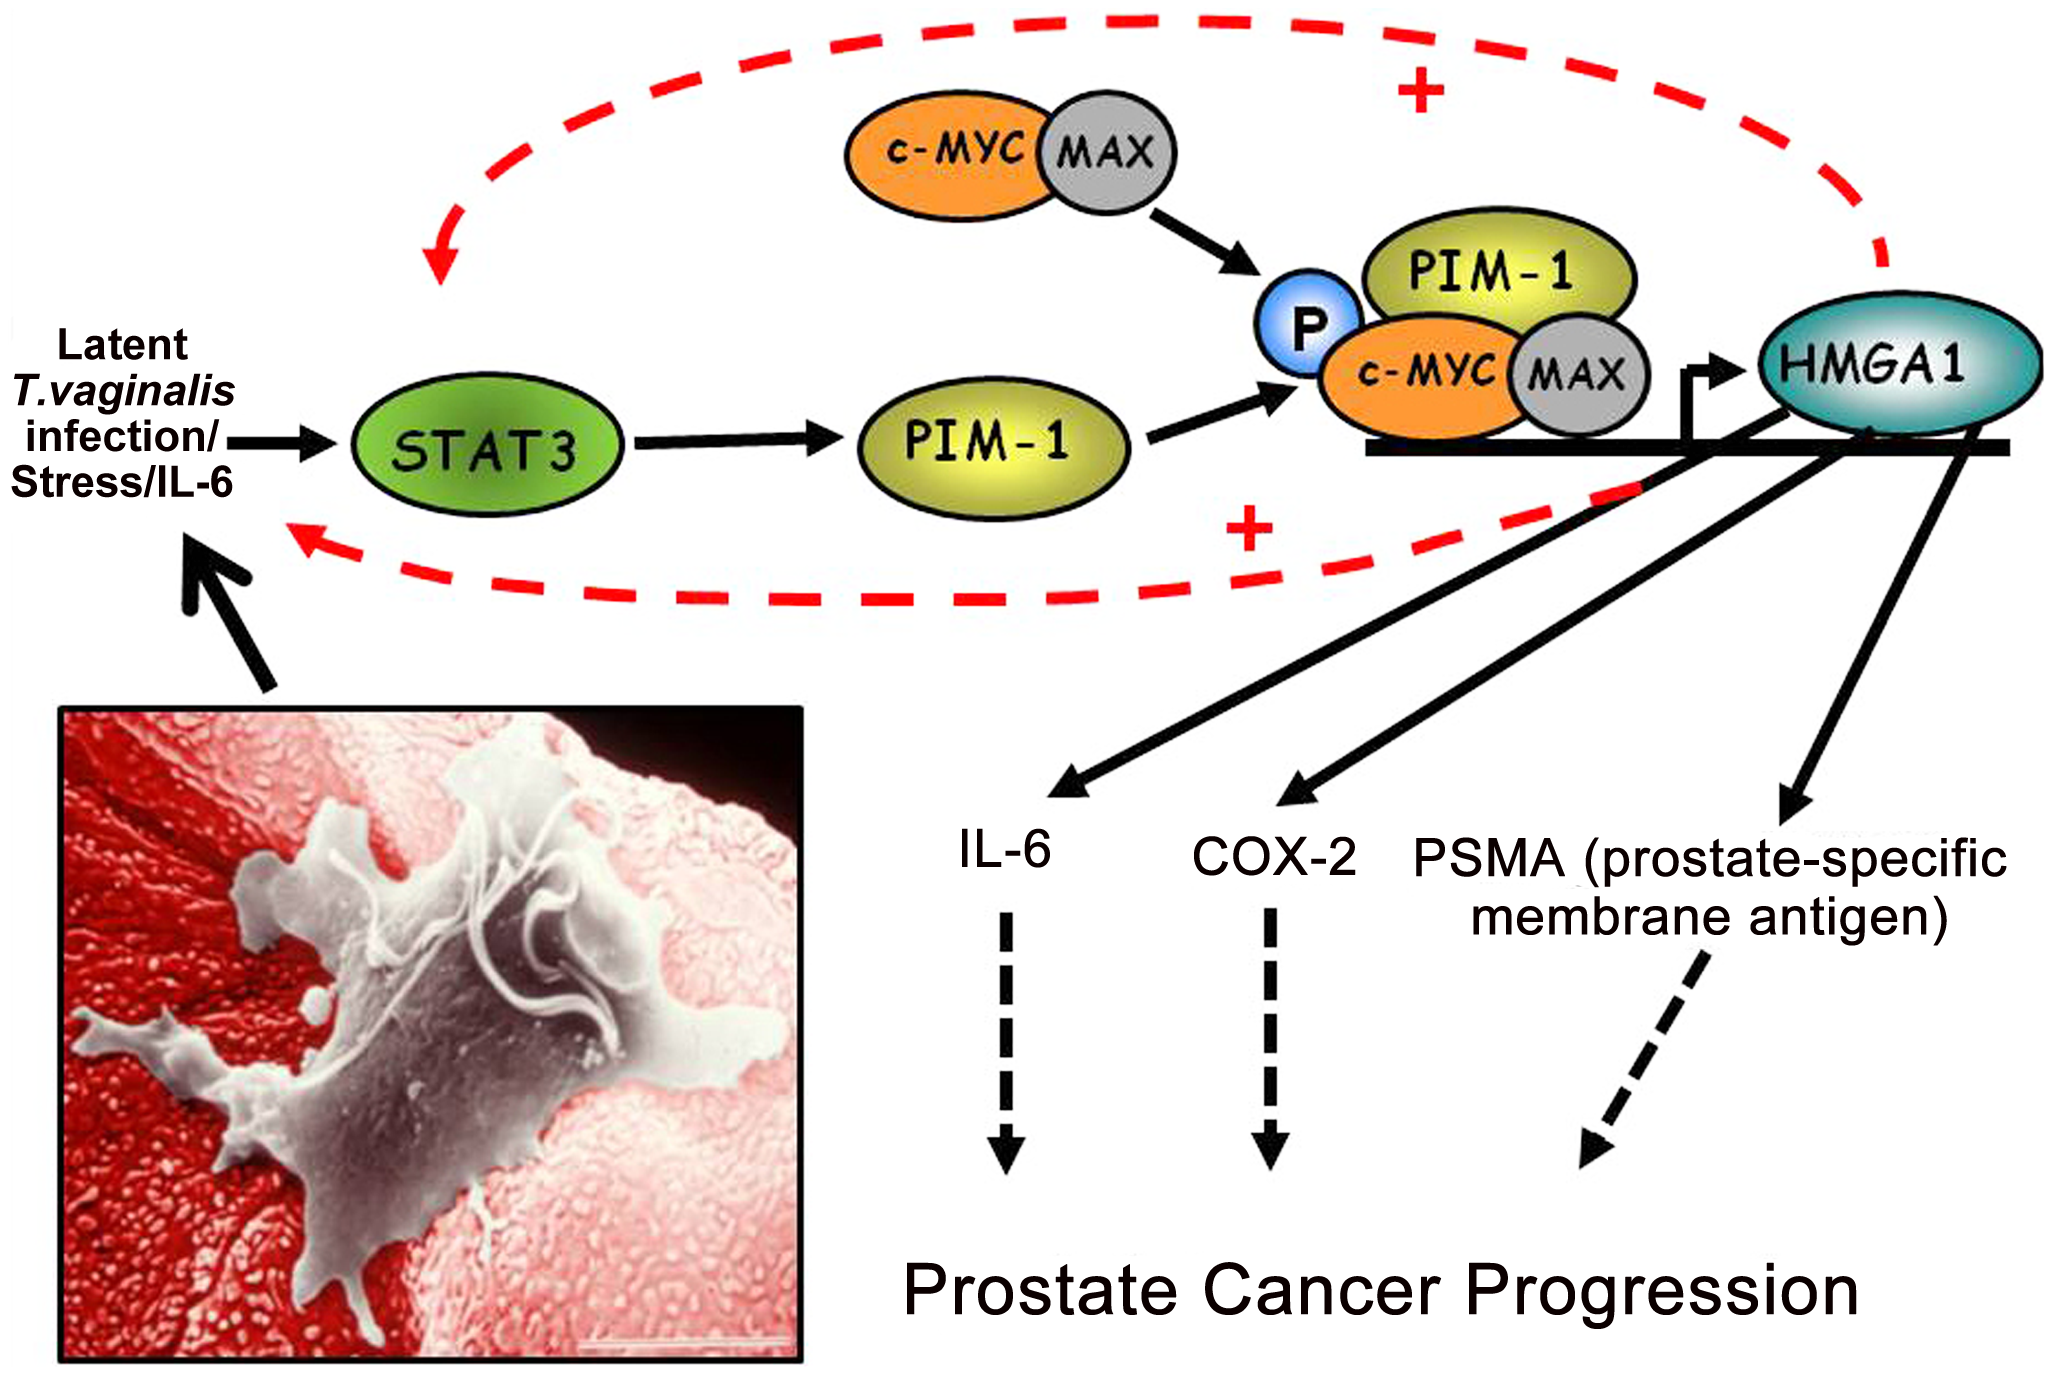 A working model of how chronic, latent <i>T. vaginalis</i> infection of prostate tissue up-regulates the signaling cascade leading to prostate carcinogenesis.